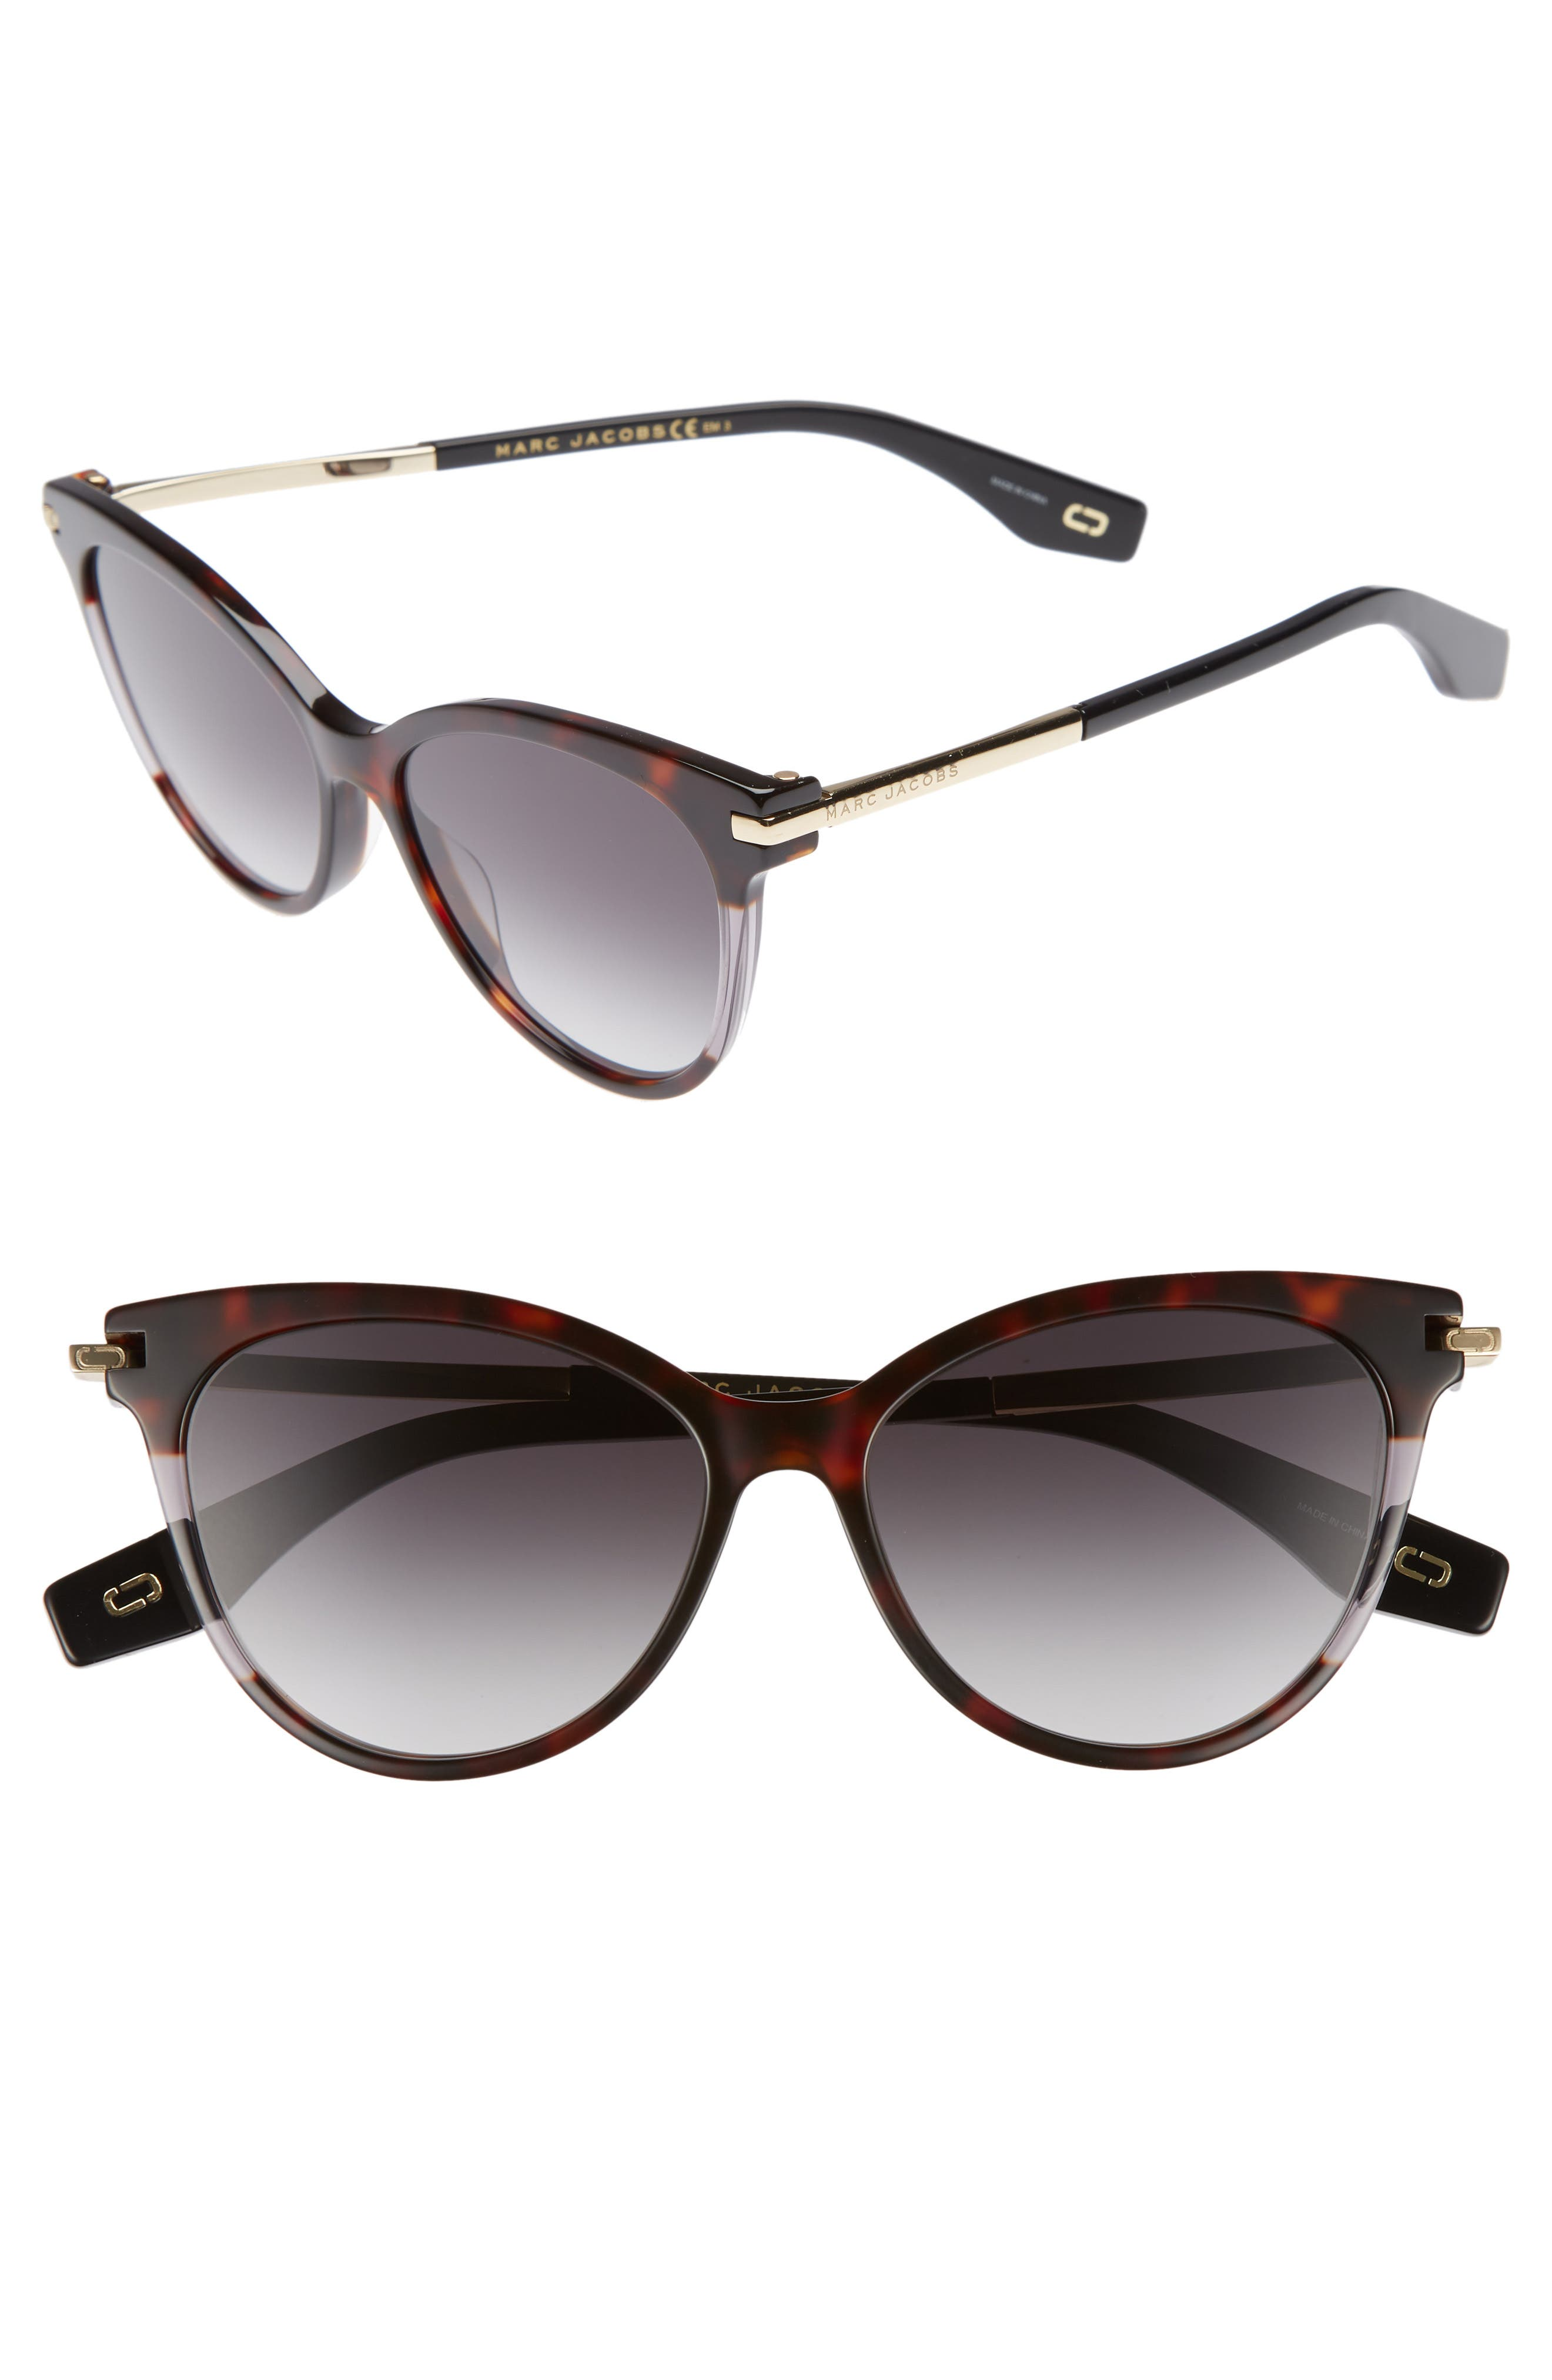 55mm Cat Eye Sunglasses,                             Main thumbnail 1, color,                             Dark Havana